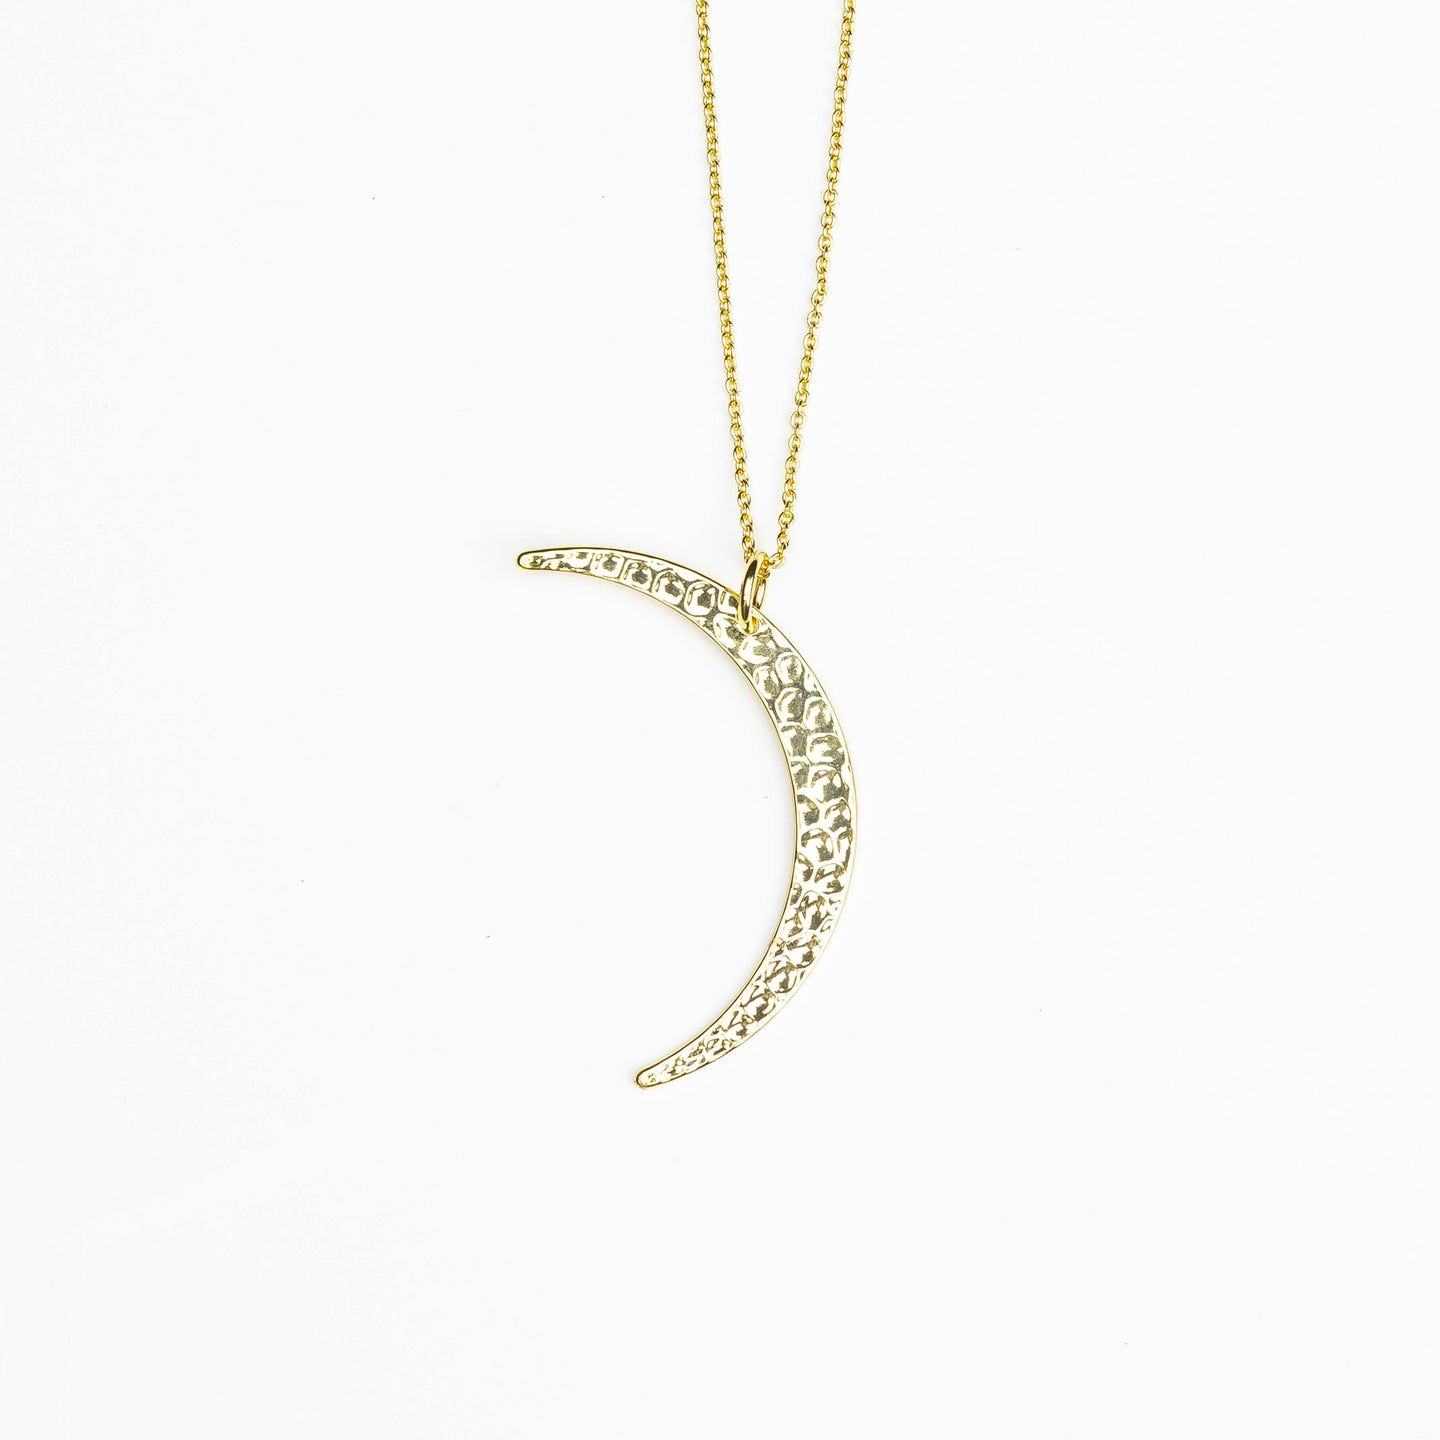 HARLOW Crescent Moon Necklace